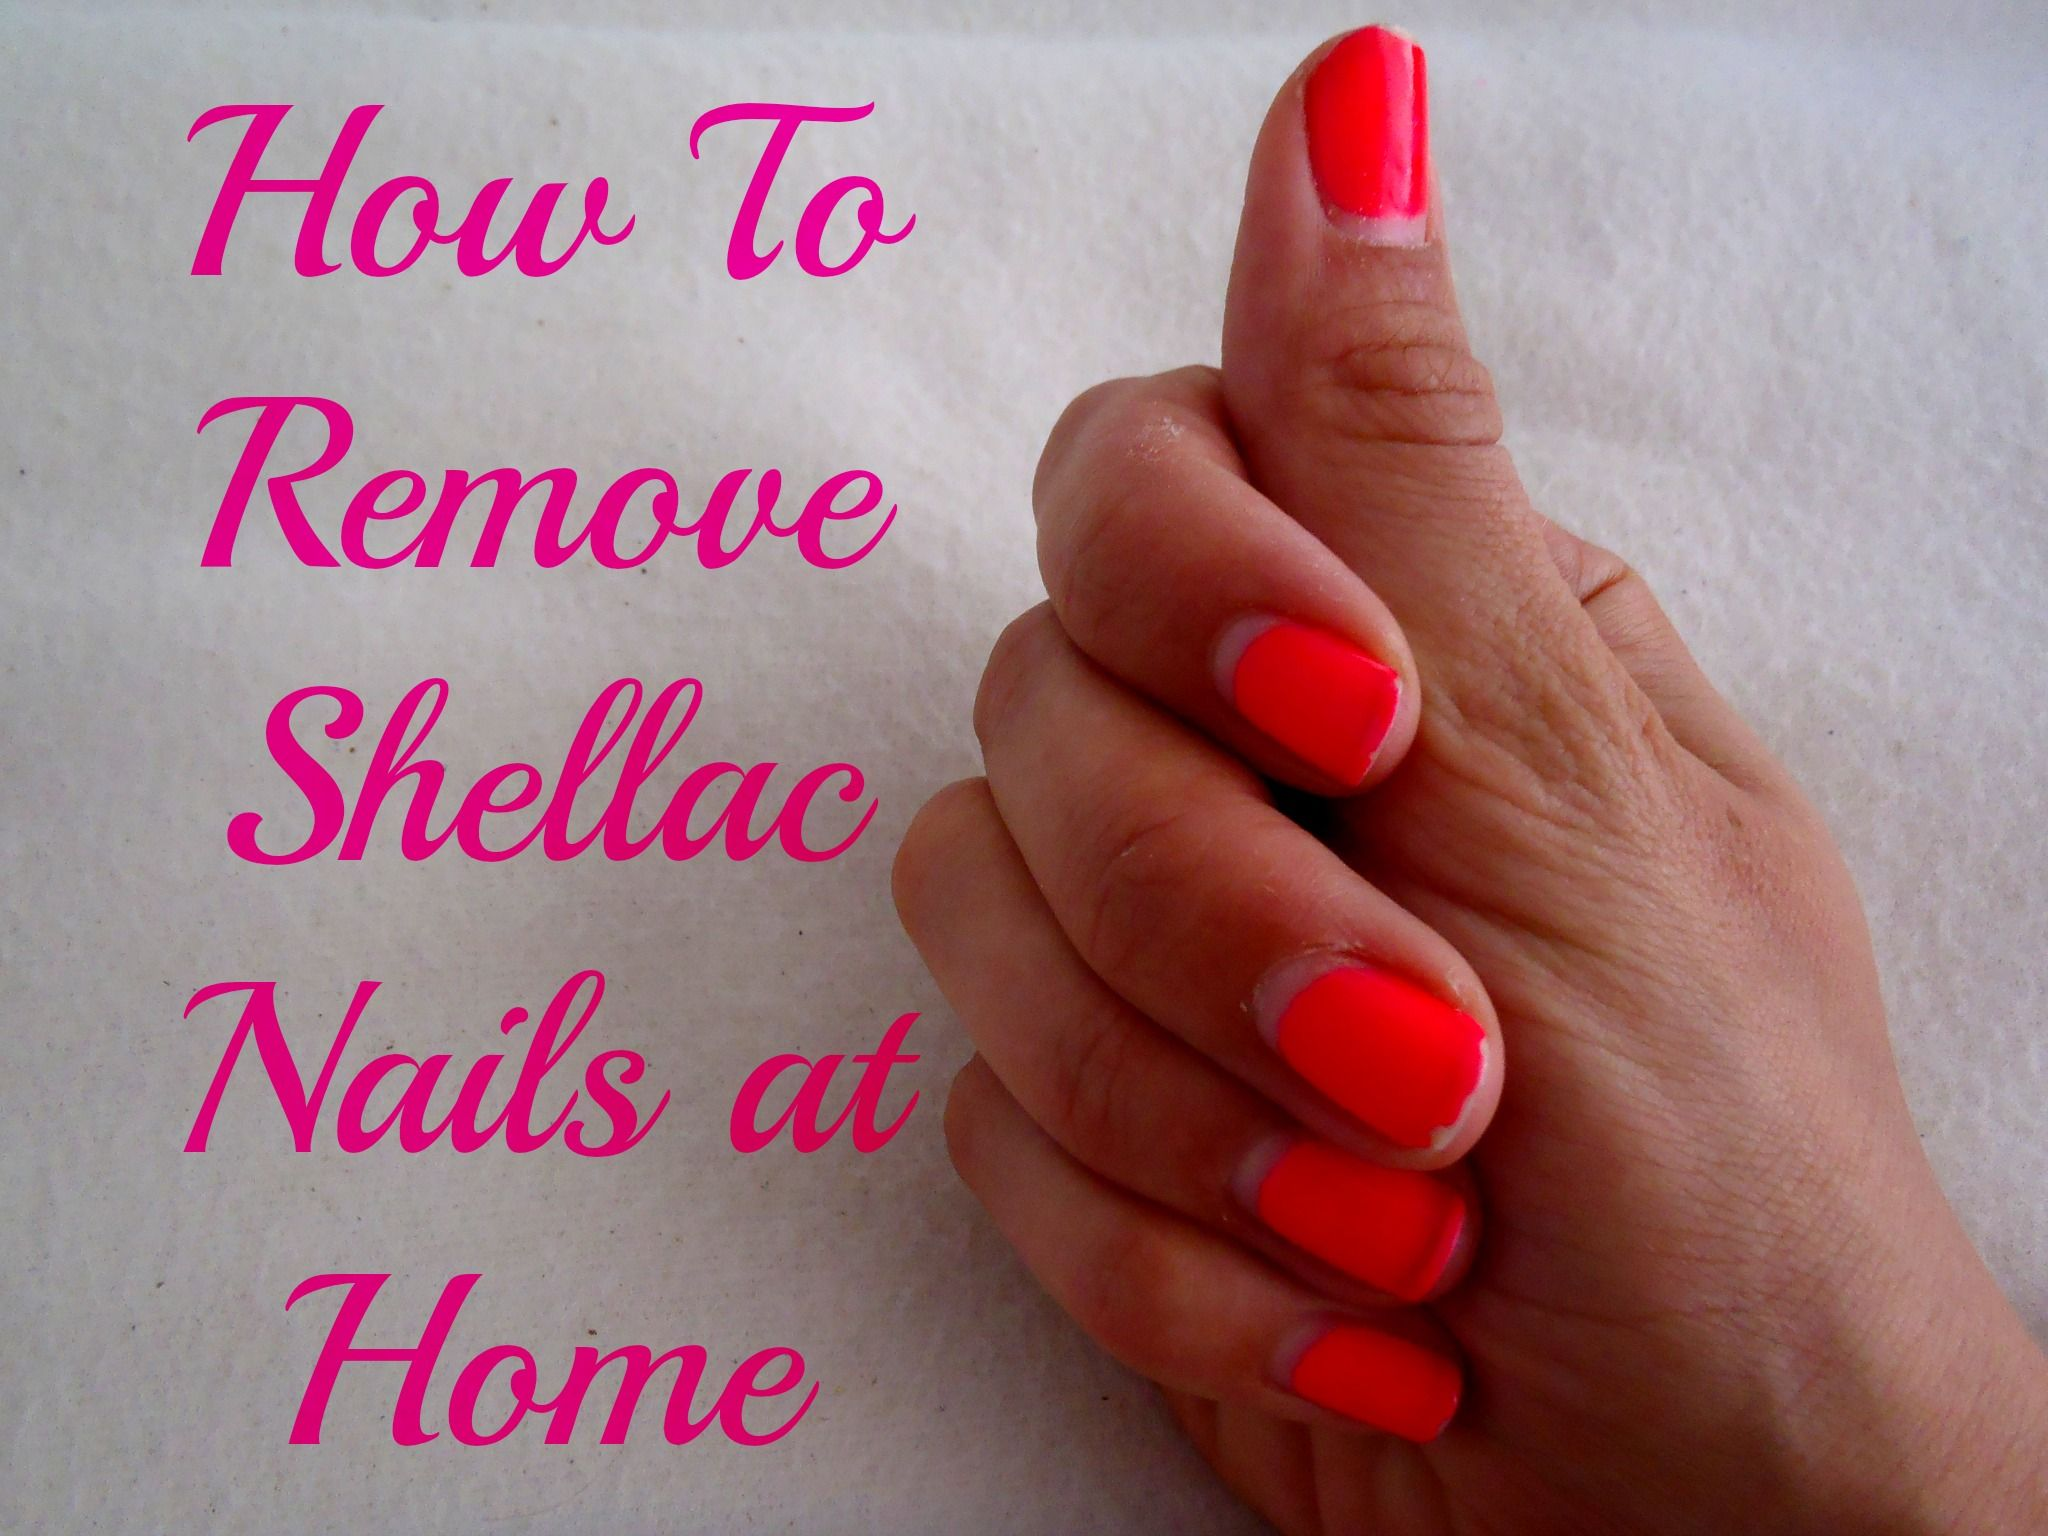 Pin By Rebecca King On Tips Crafts Shellac Nails At Home Shellac Nails Shellac Nail Polish